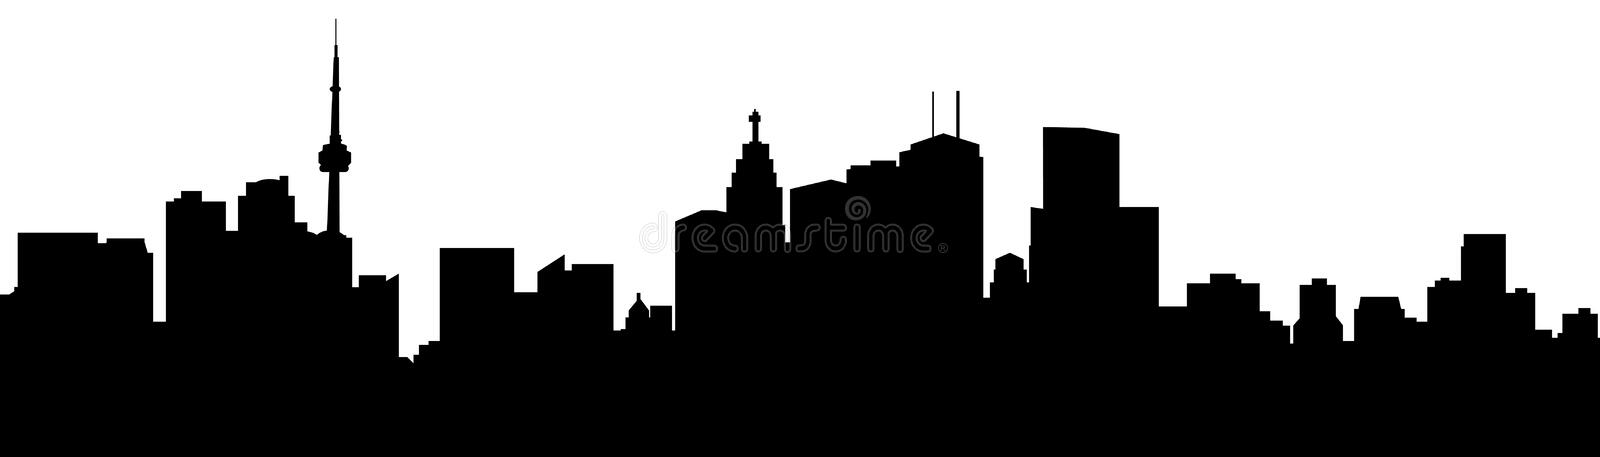 Toronto Silhouette. Skyline silhouette of the city of Toronto, Canada vector illustration